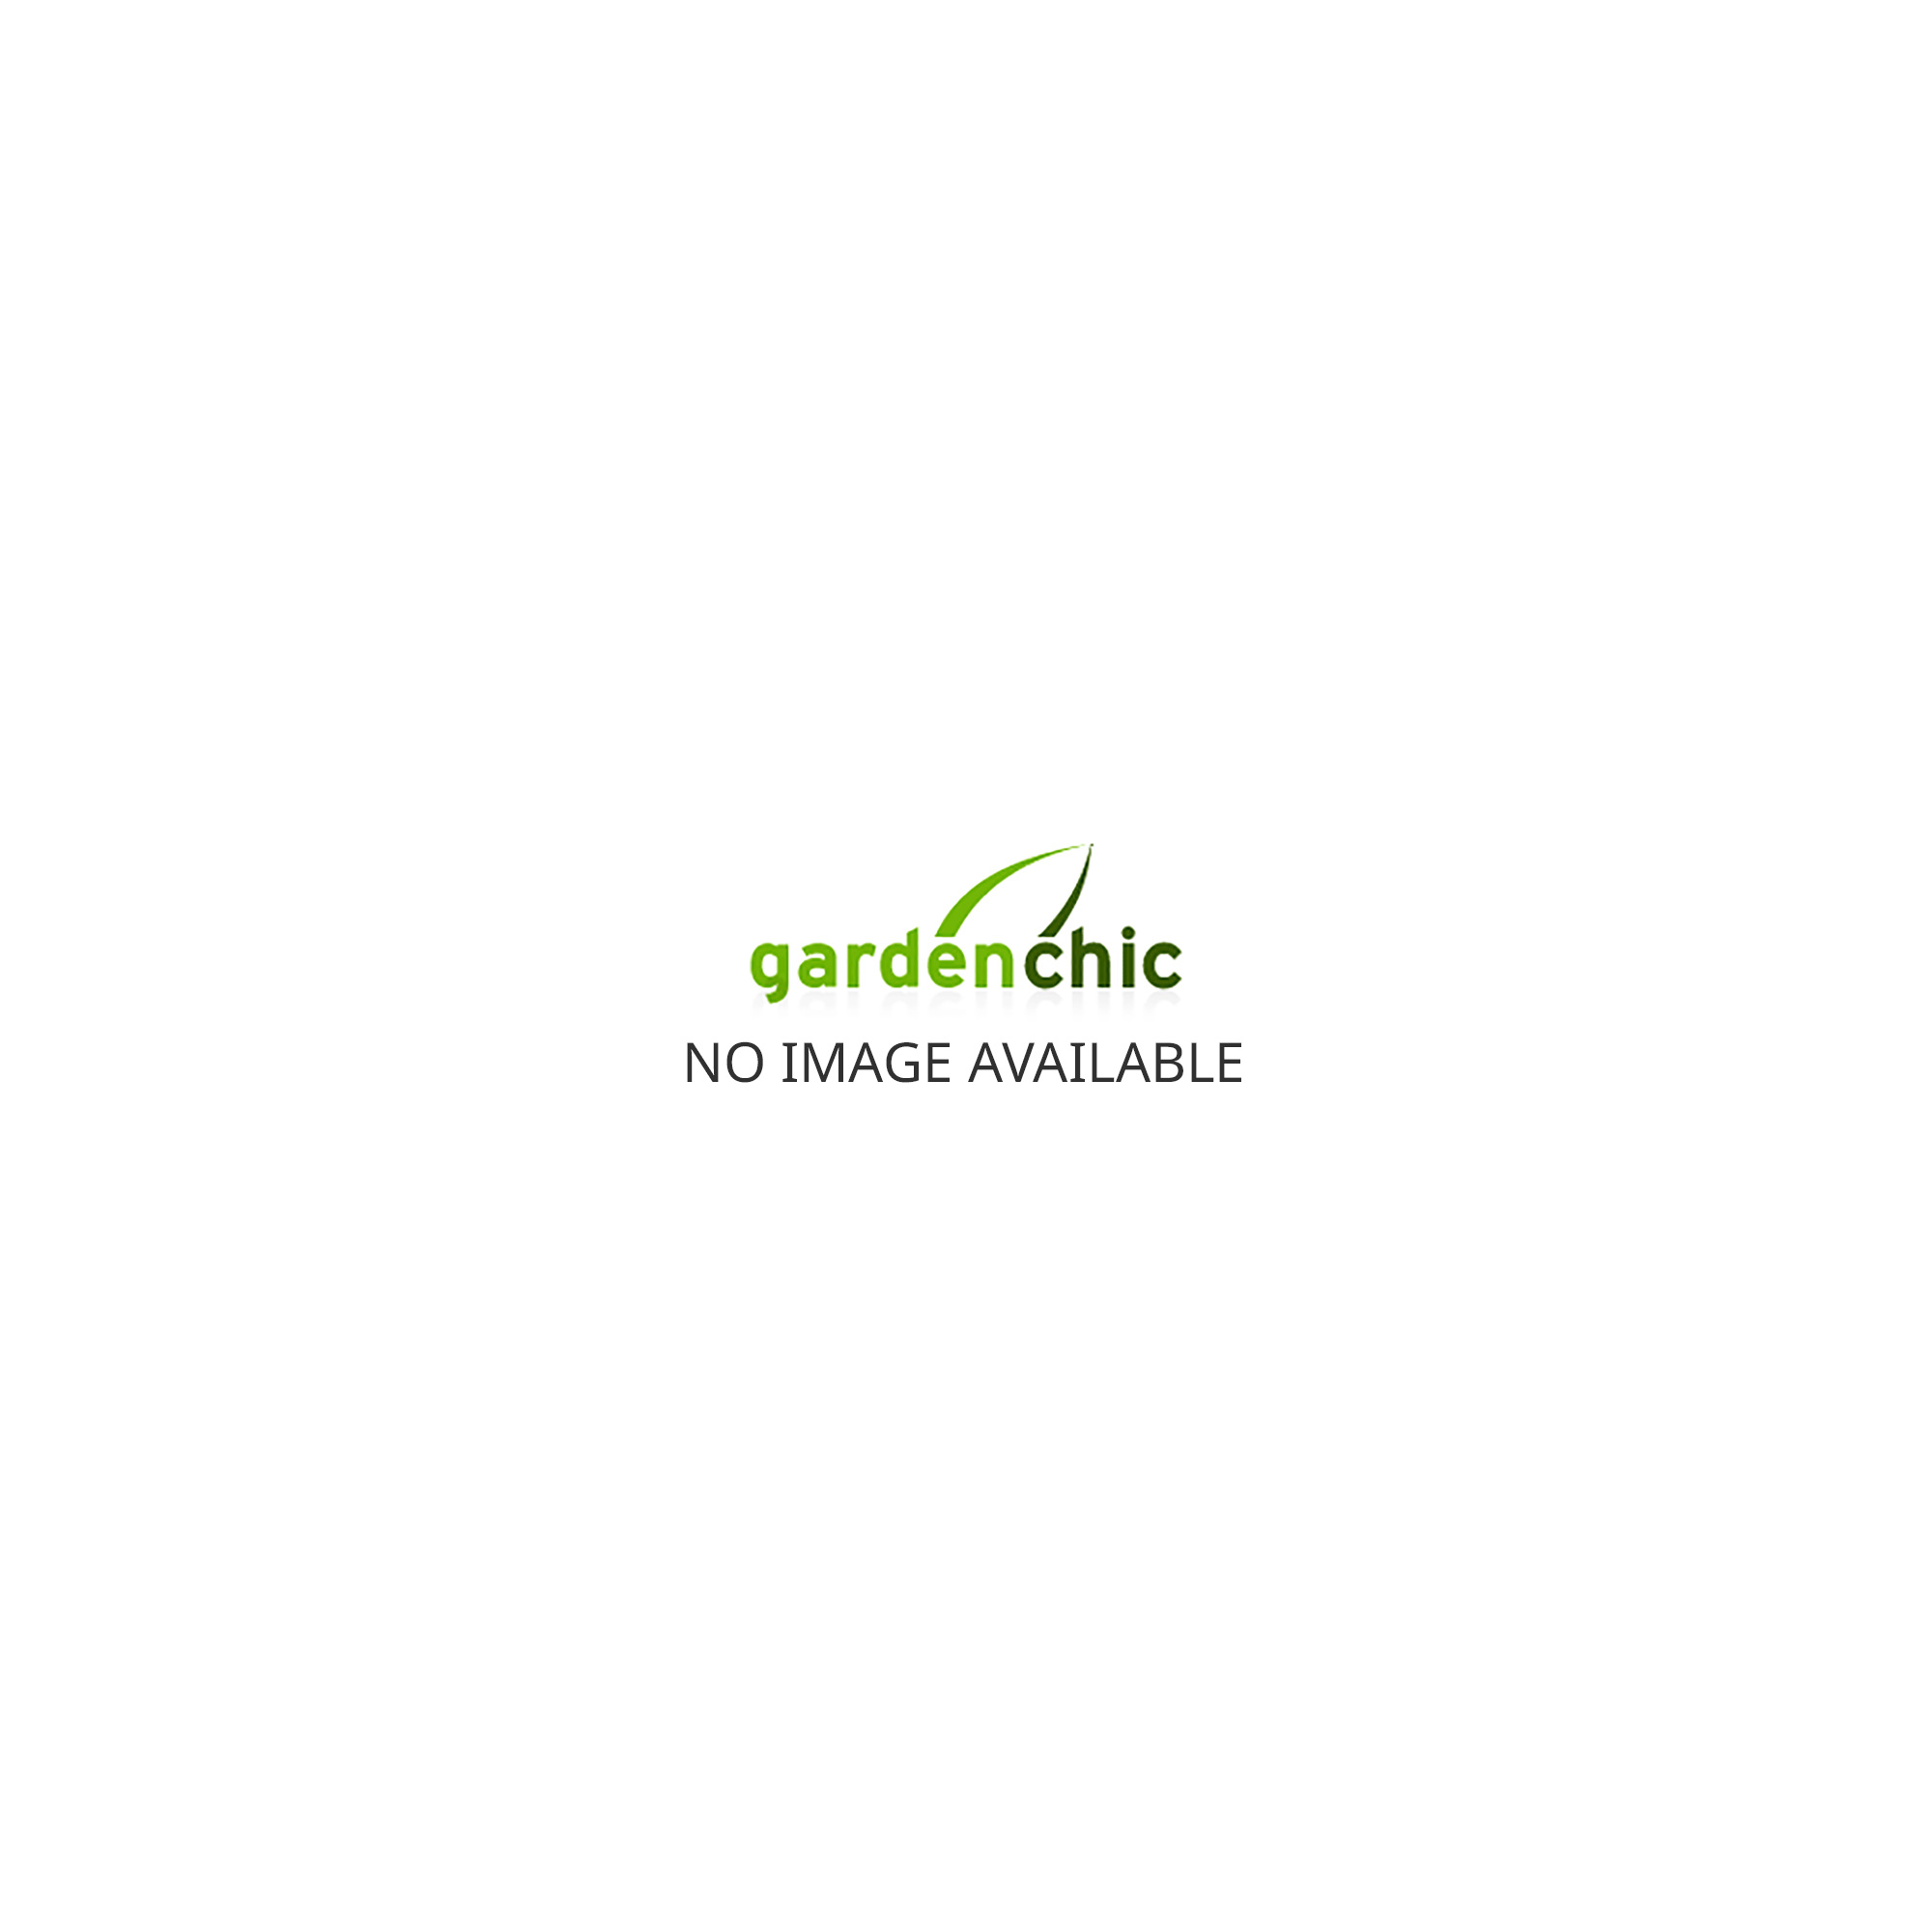 IDA 900 Wall Garden 4ft x 2ft Greenhouse - Green FREE Matching Base until 31st July 2018